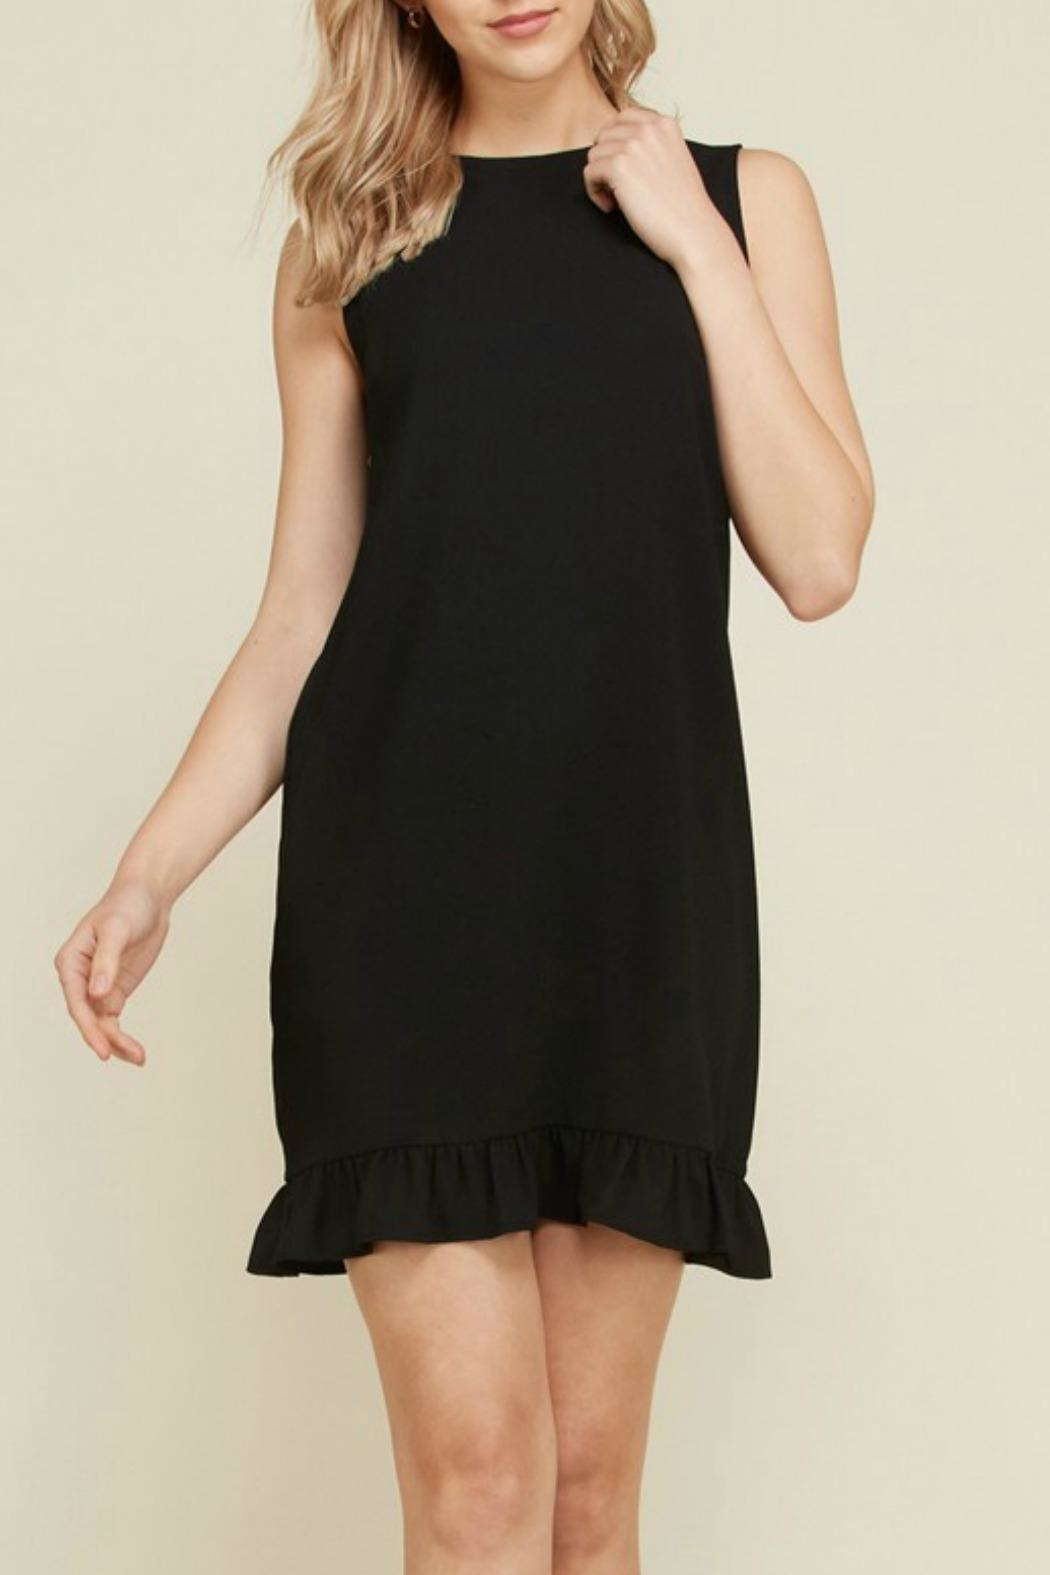 2 Hearts Trina Black Dress - Back Cropped Image